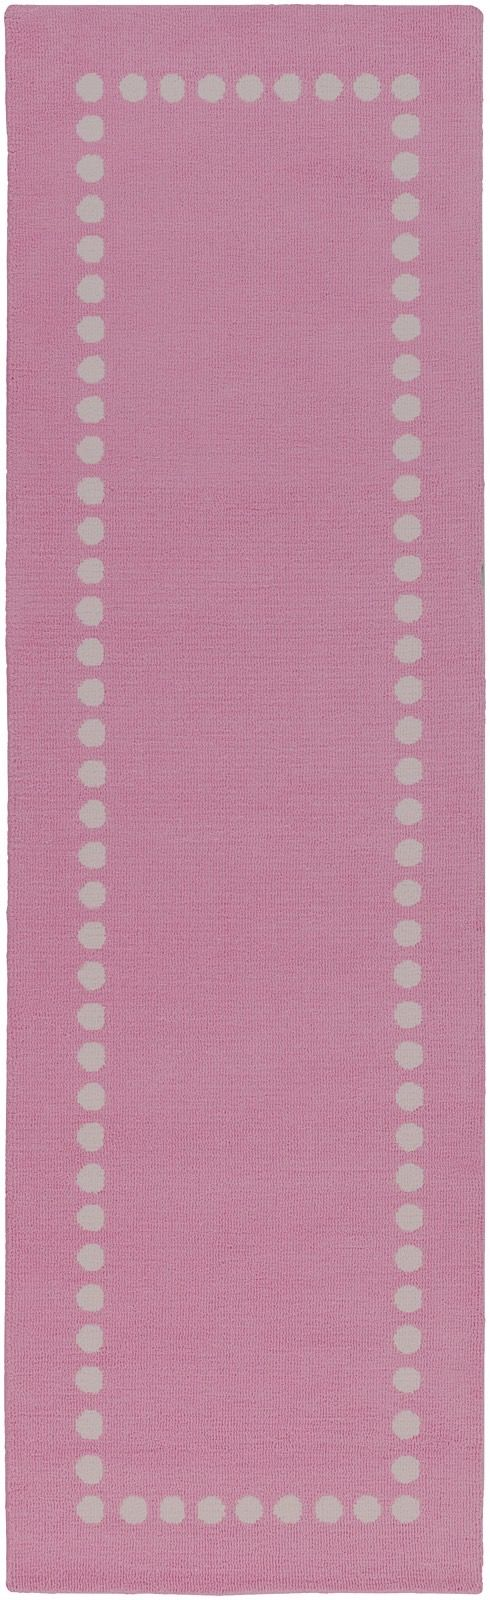 surya abigail contemporary area rug collection